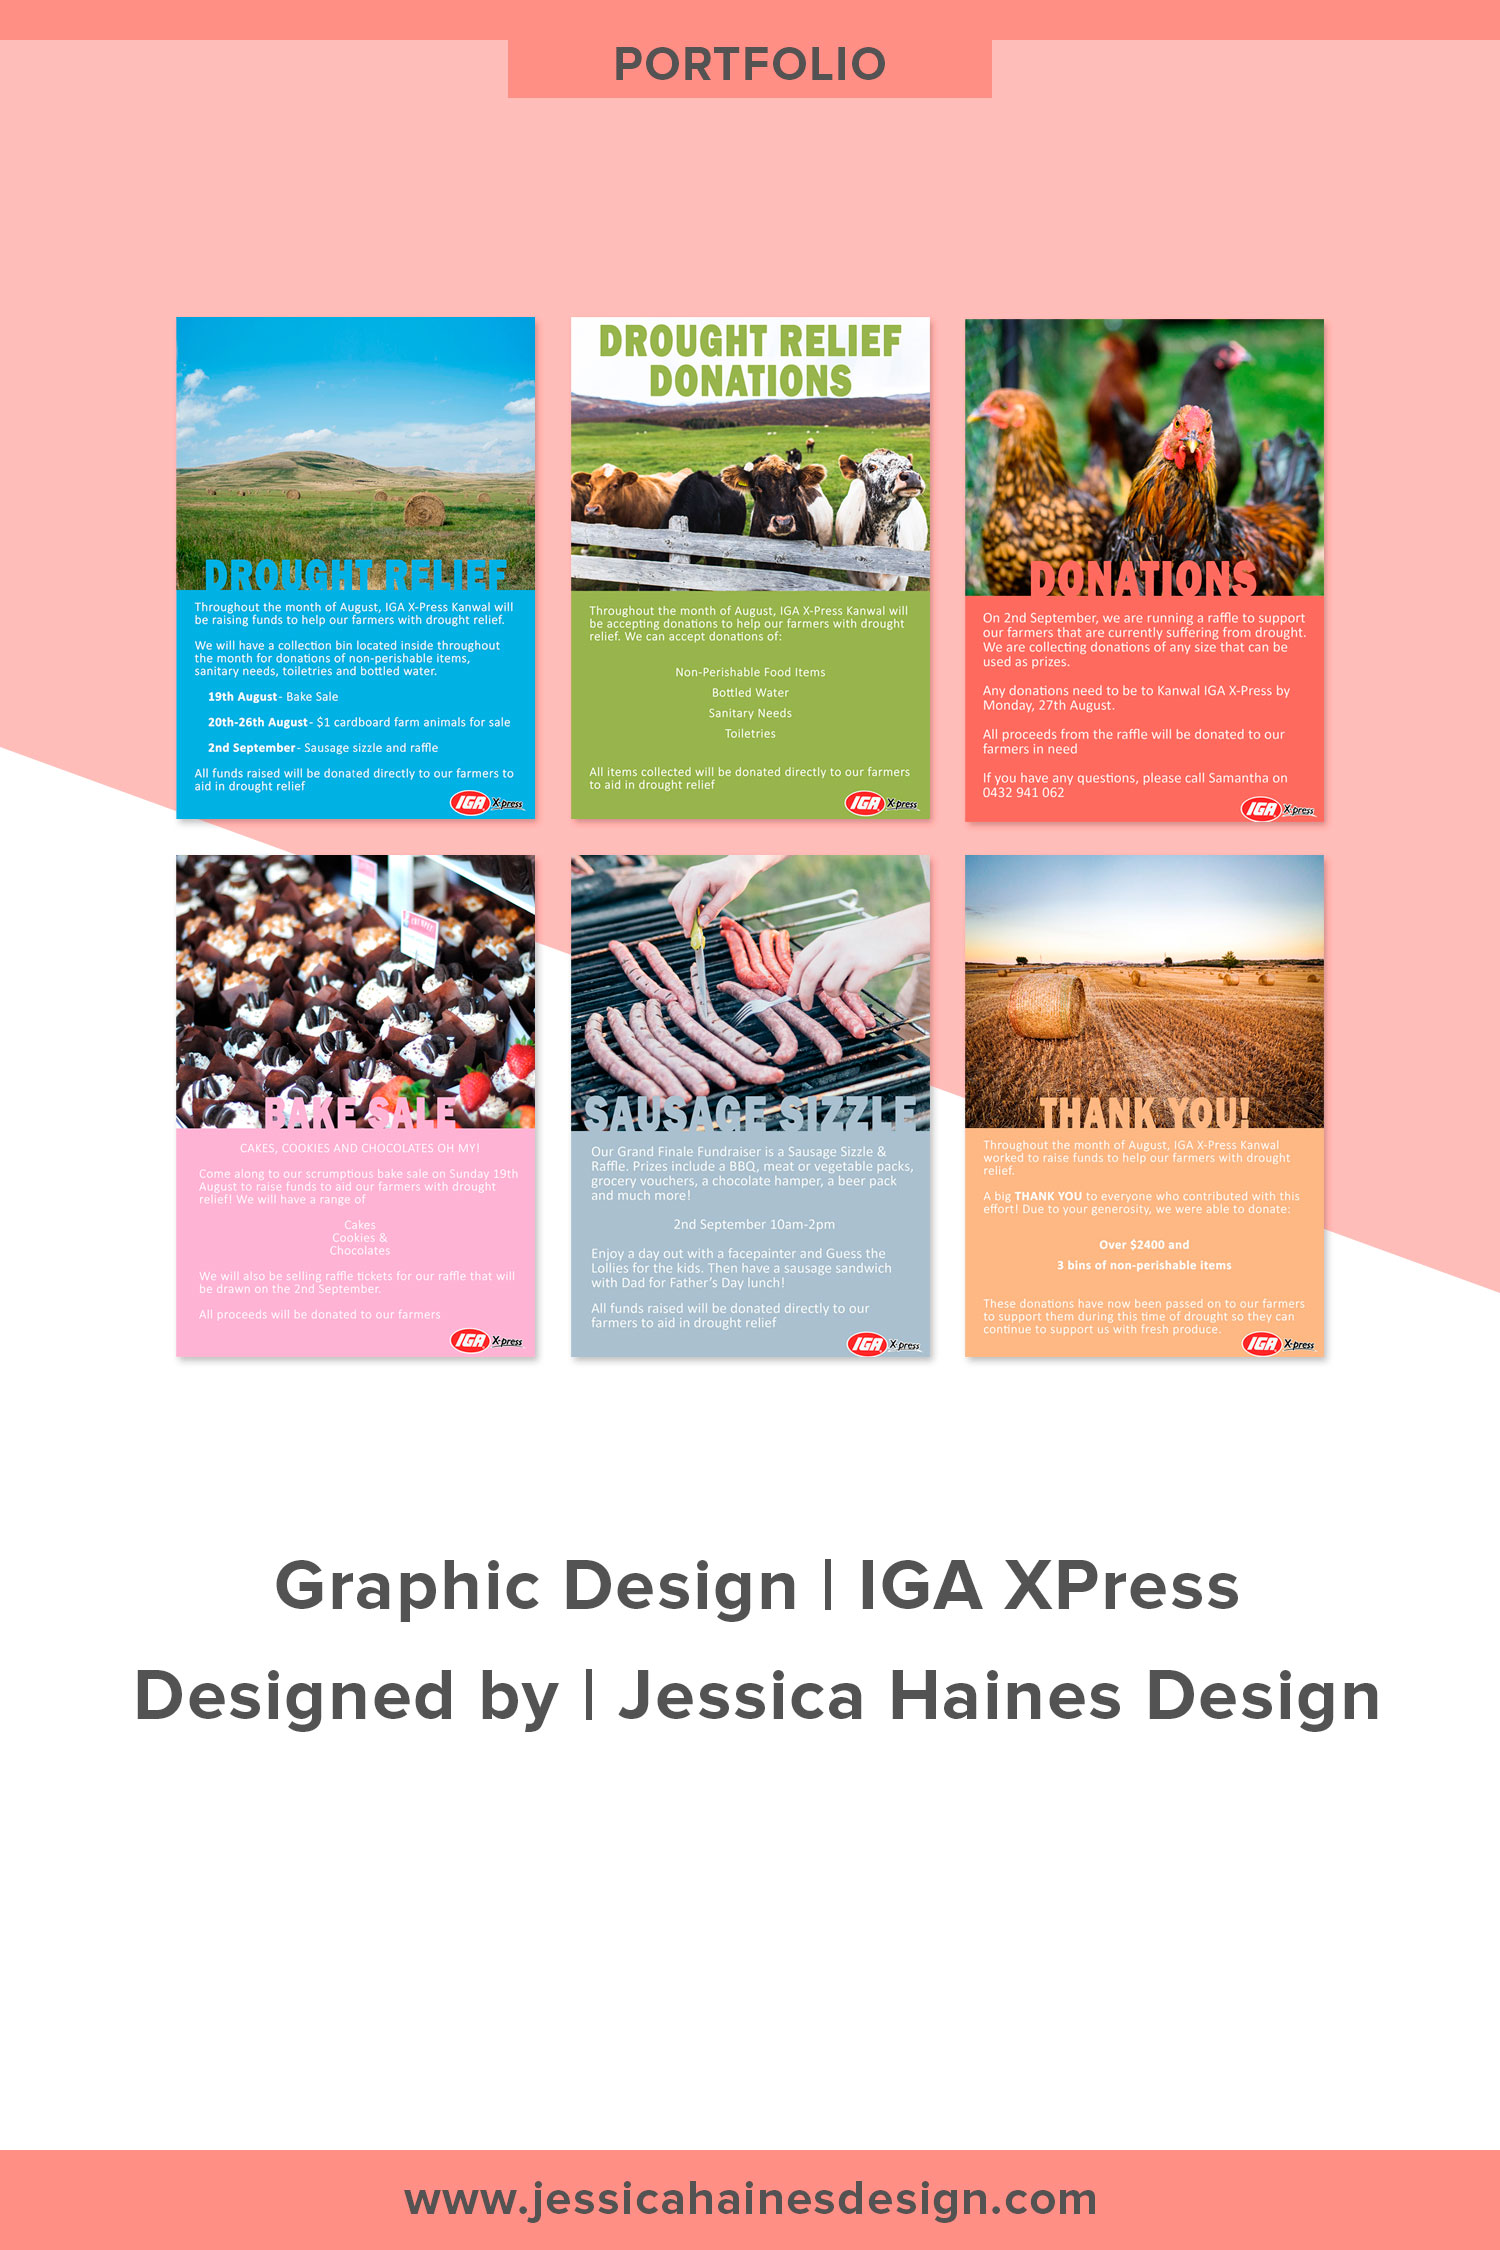 IGA Xpress custom graphic design posters for fundraiser for Aussie farmers suffering from drought. Click through to see more details and find out how I can help you with a custom graphic design project |  www.jessicahainesdesign.com